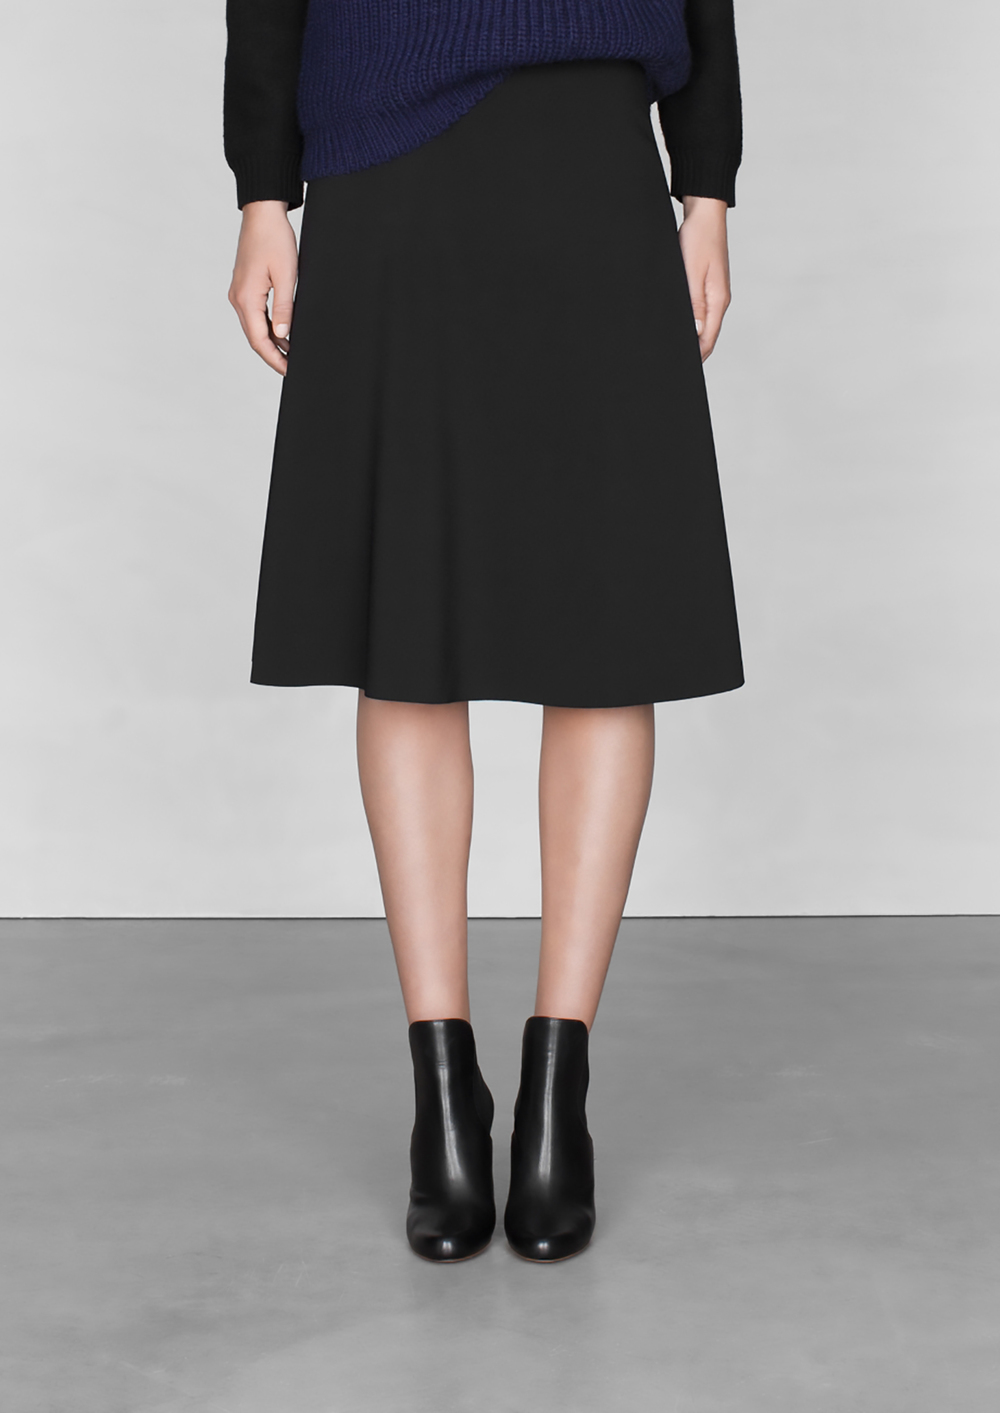 &otherstories A line midi skirt 1500.jpg